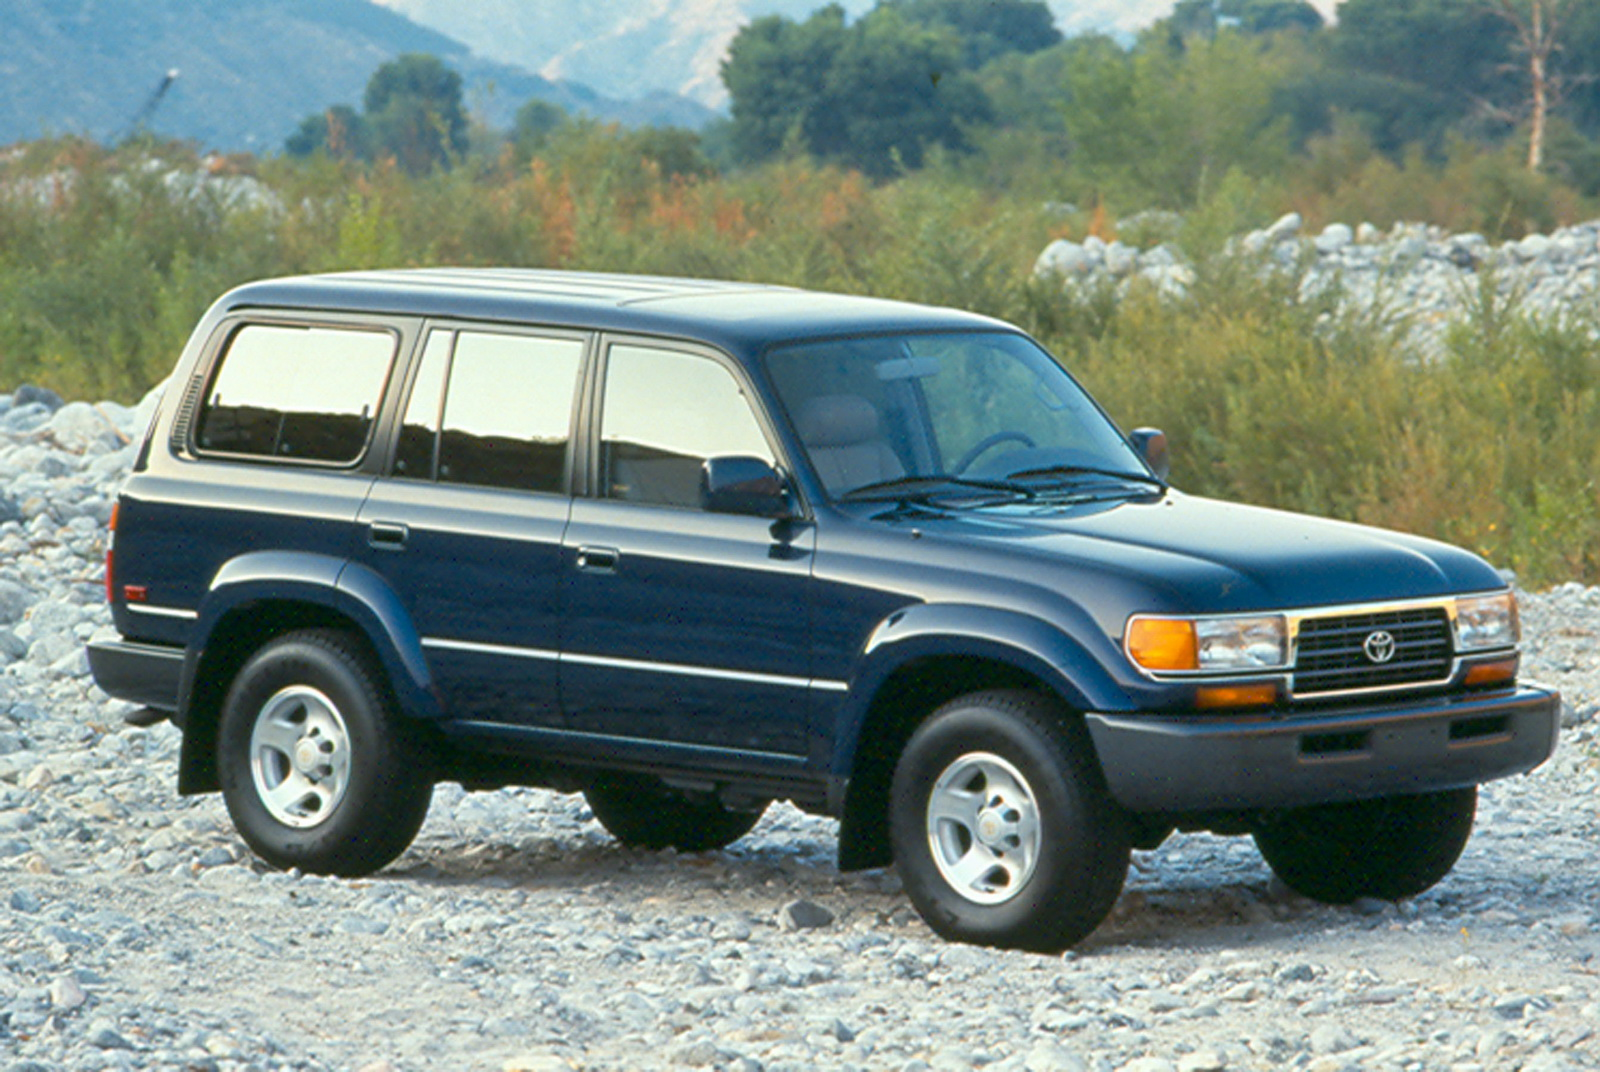 Land Cruiser 80 Series